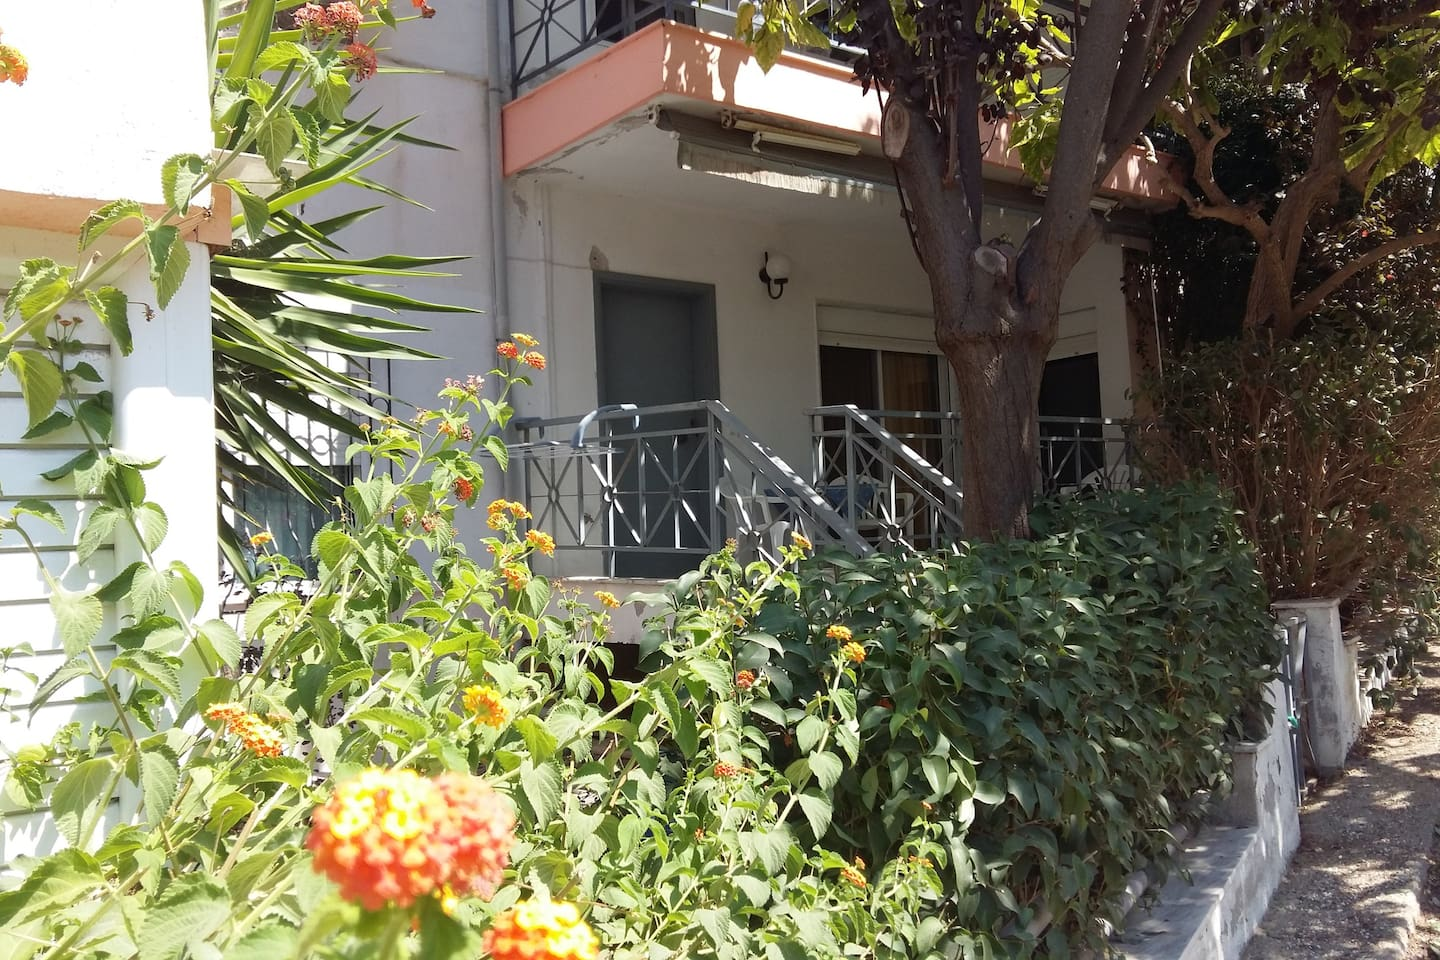 Costa Focia Apartment Tel +306944277650 for details. This is the entrance/balcony of the apartment.